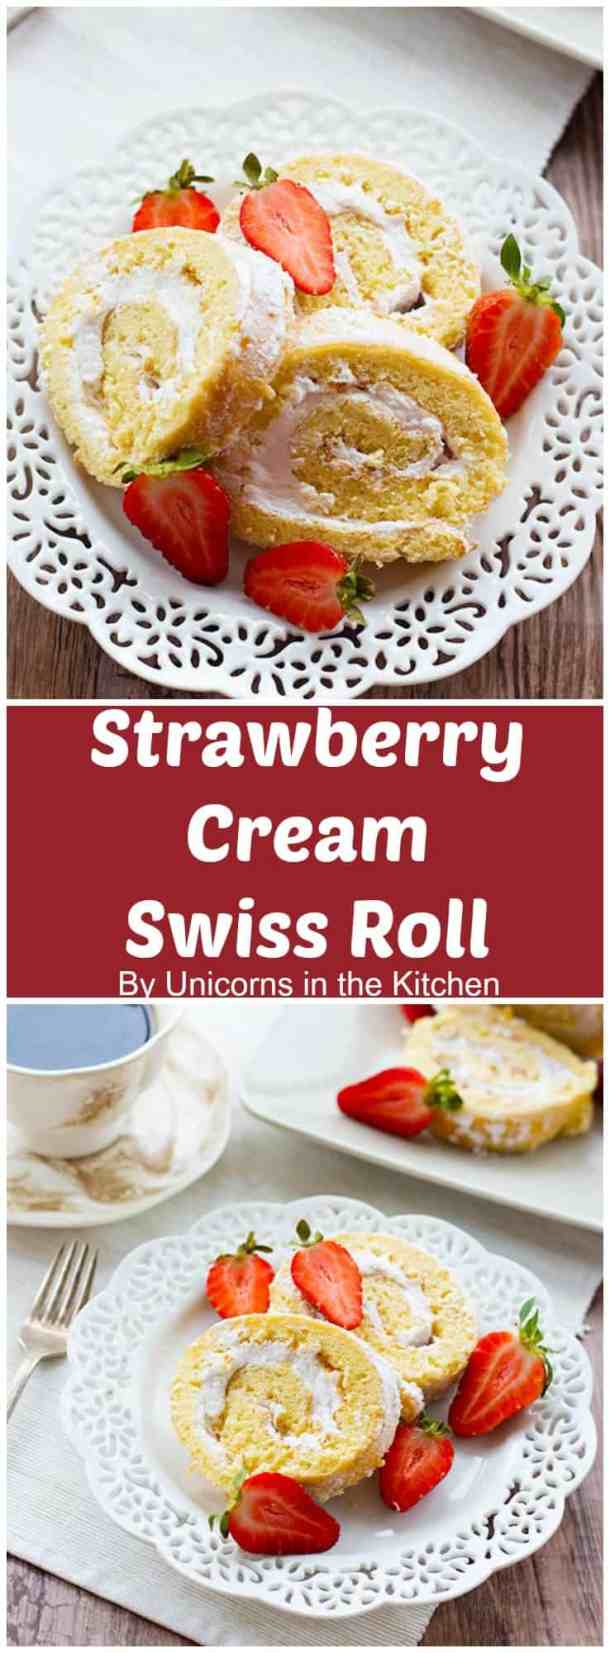 This strawberry cream swiss roll is the ultimate summer treat! It's airy, delicious, and full of whipped cream. Making a swiss roll at home is way easier than what you may think!